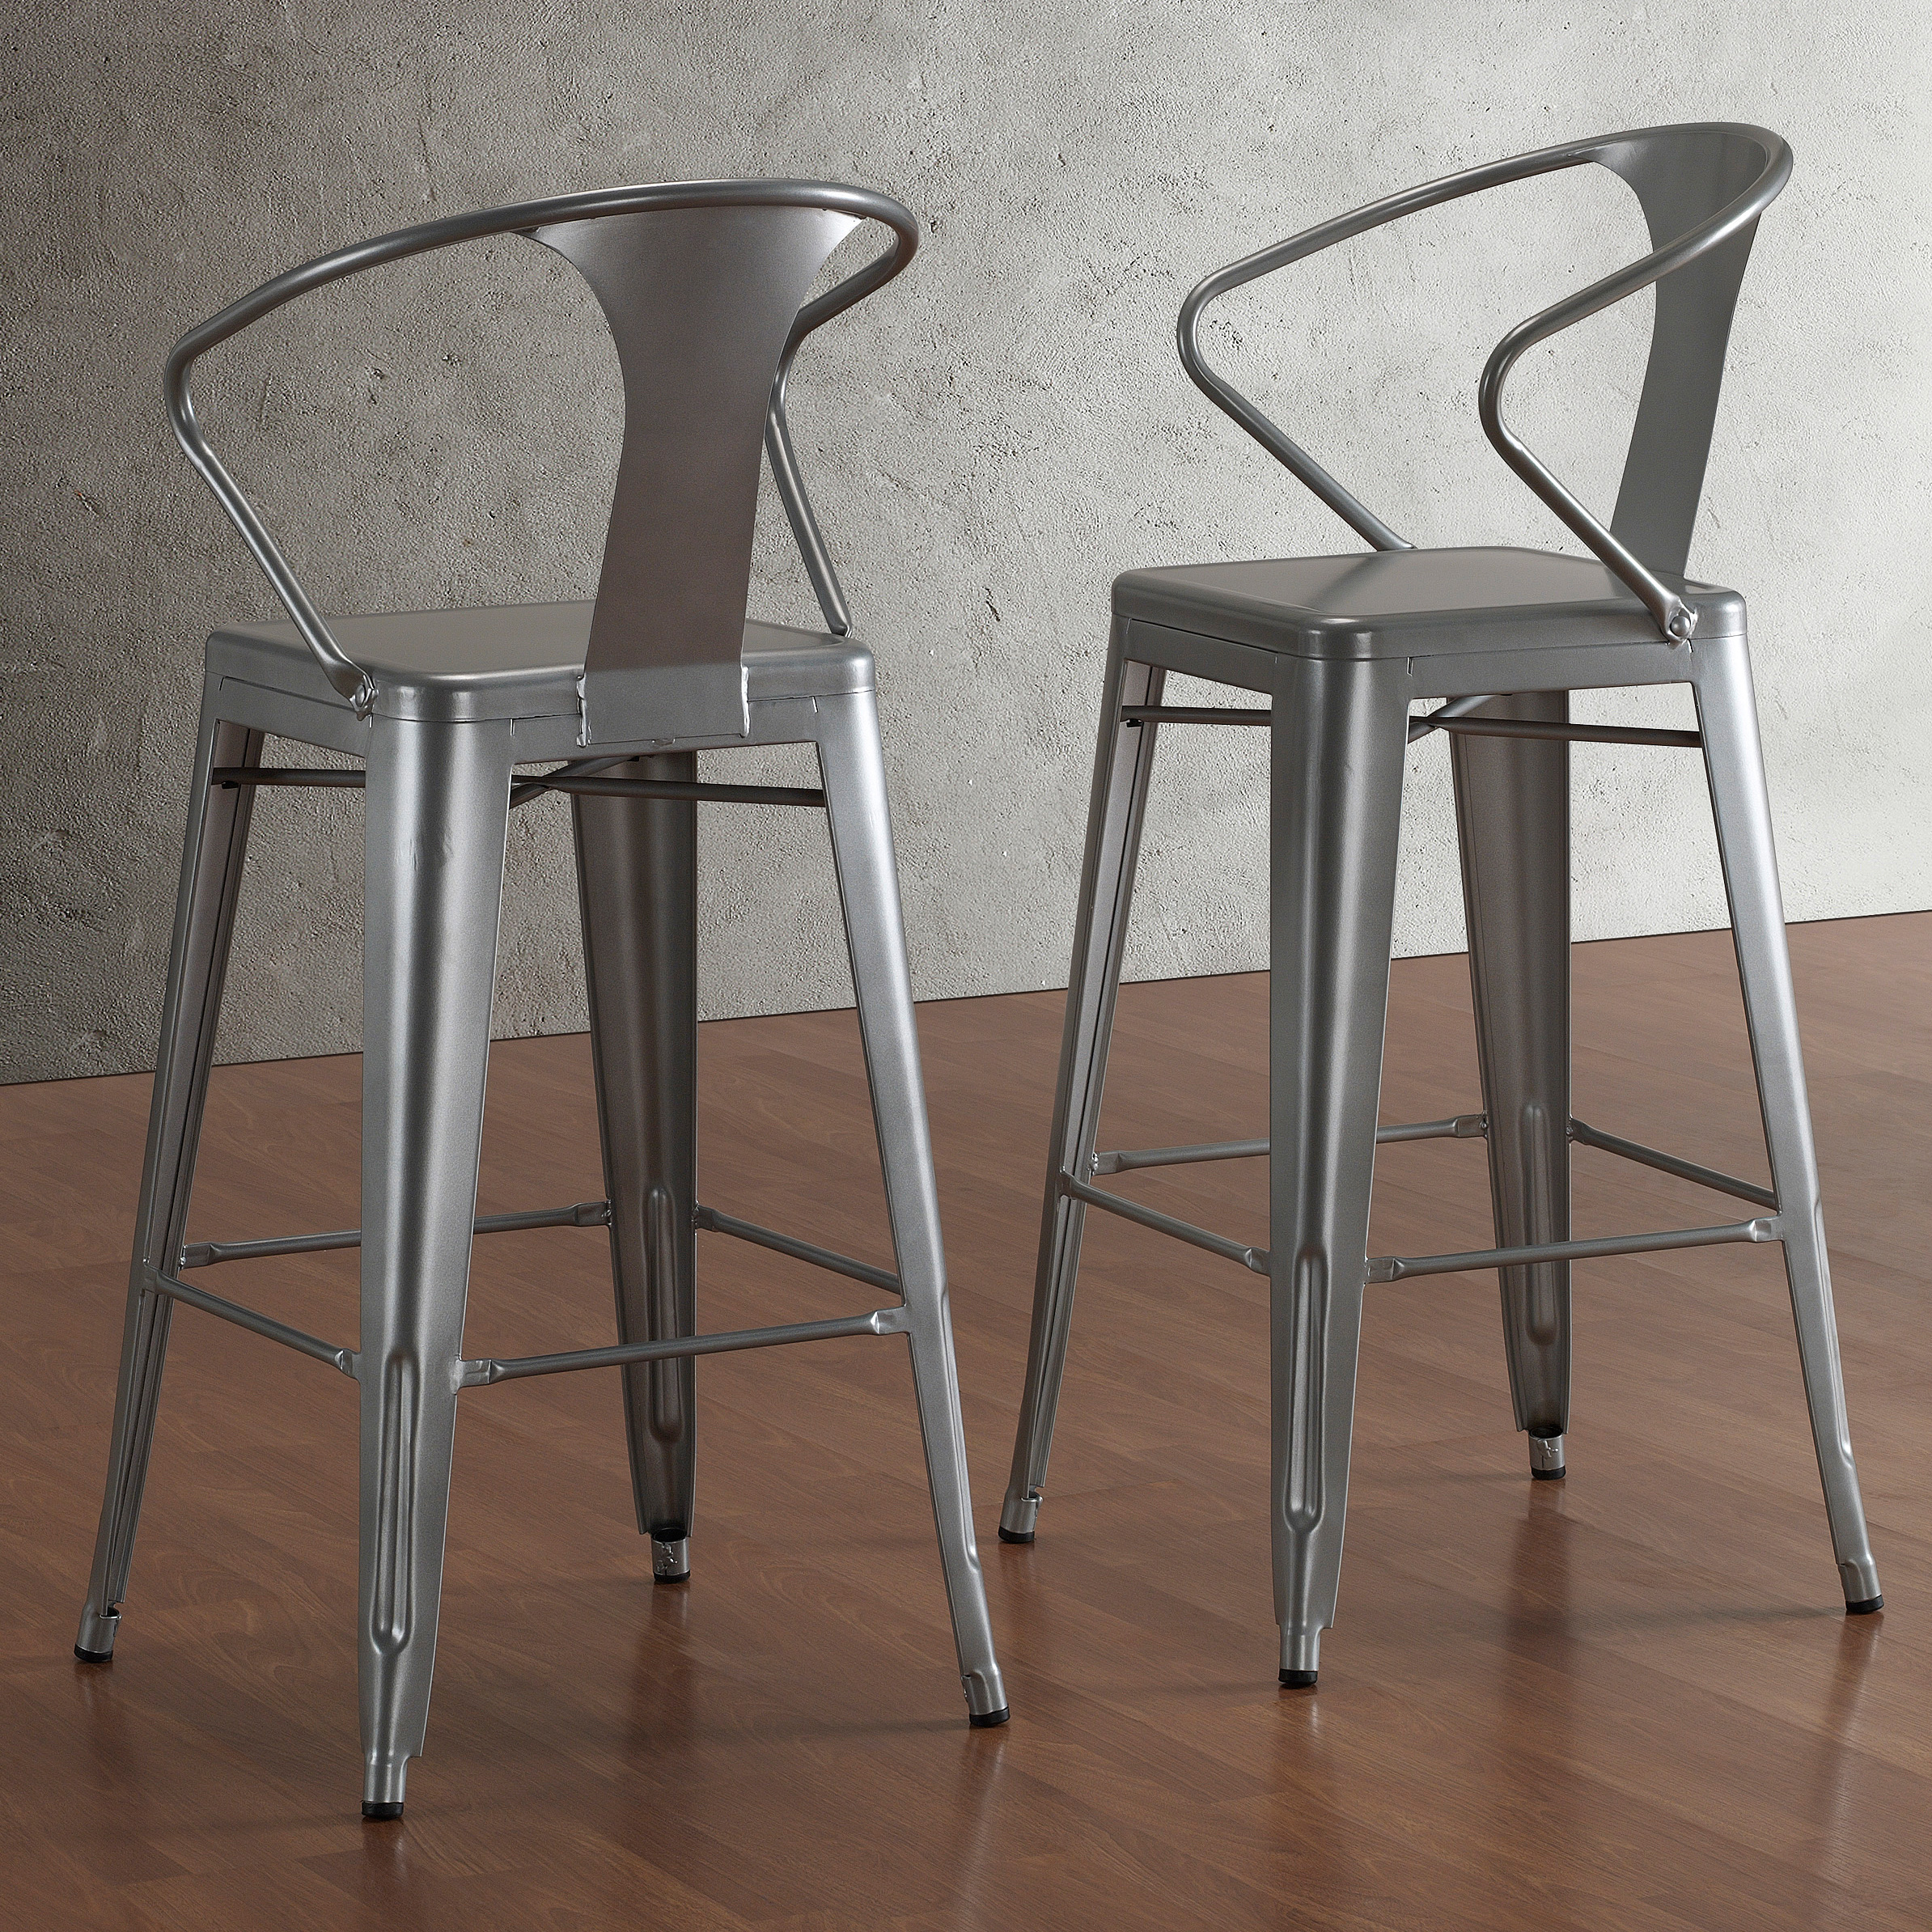 Tabouret Silver With Back (Image 6 of 10)